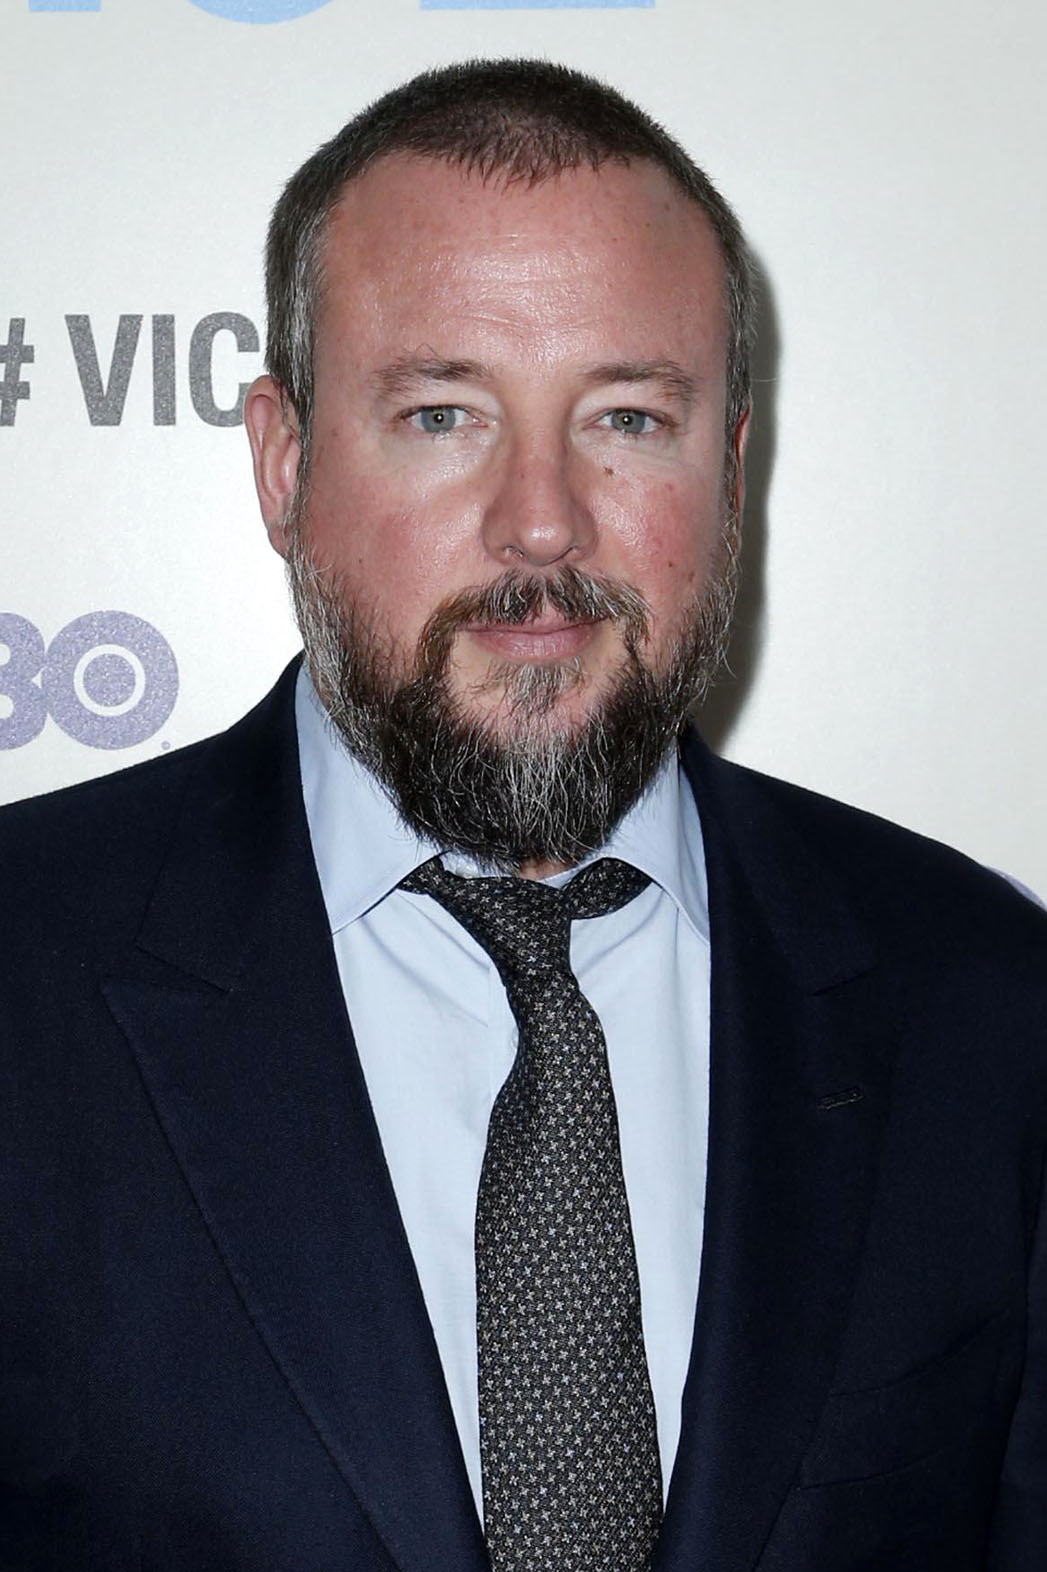 Vice Media Shane Smith - P 2014